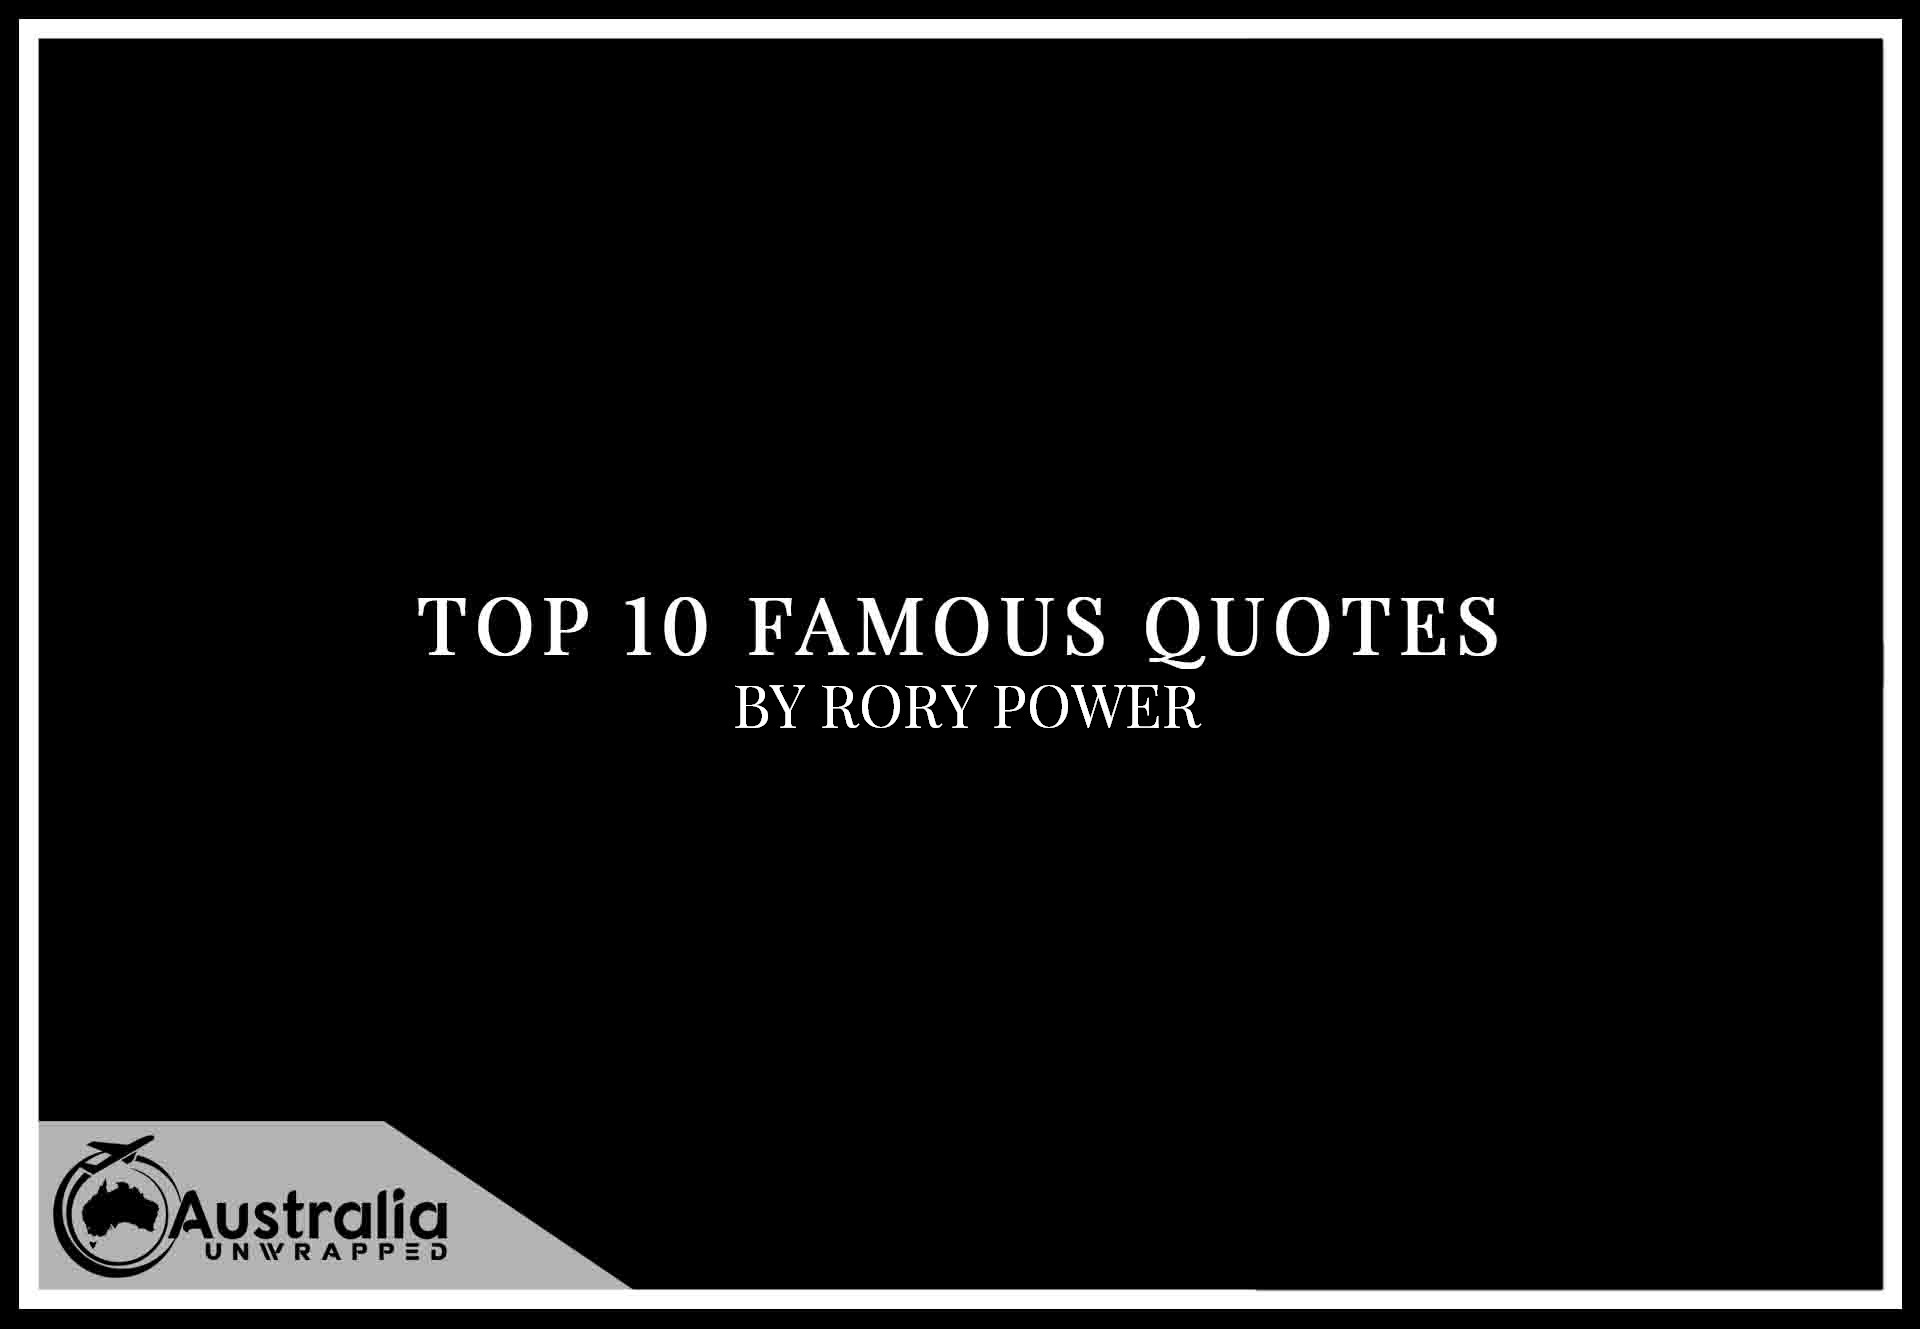 Top 10 Famous Quotes by Author Rory Power